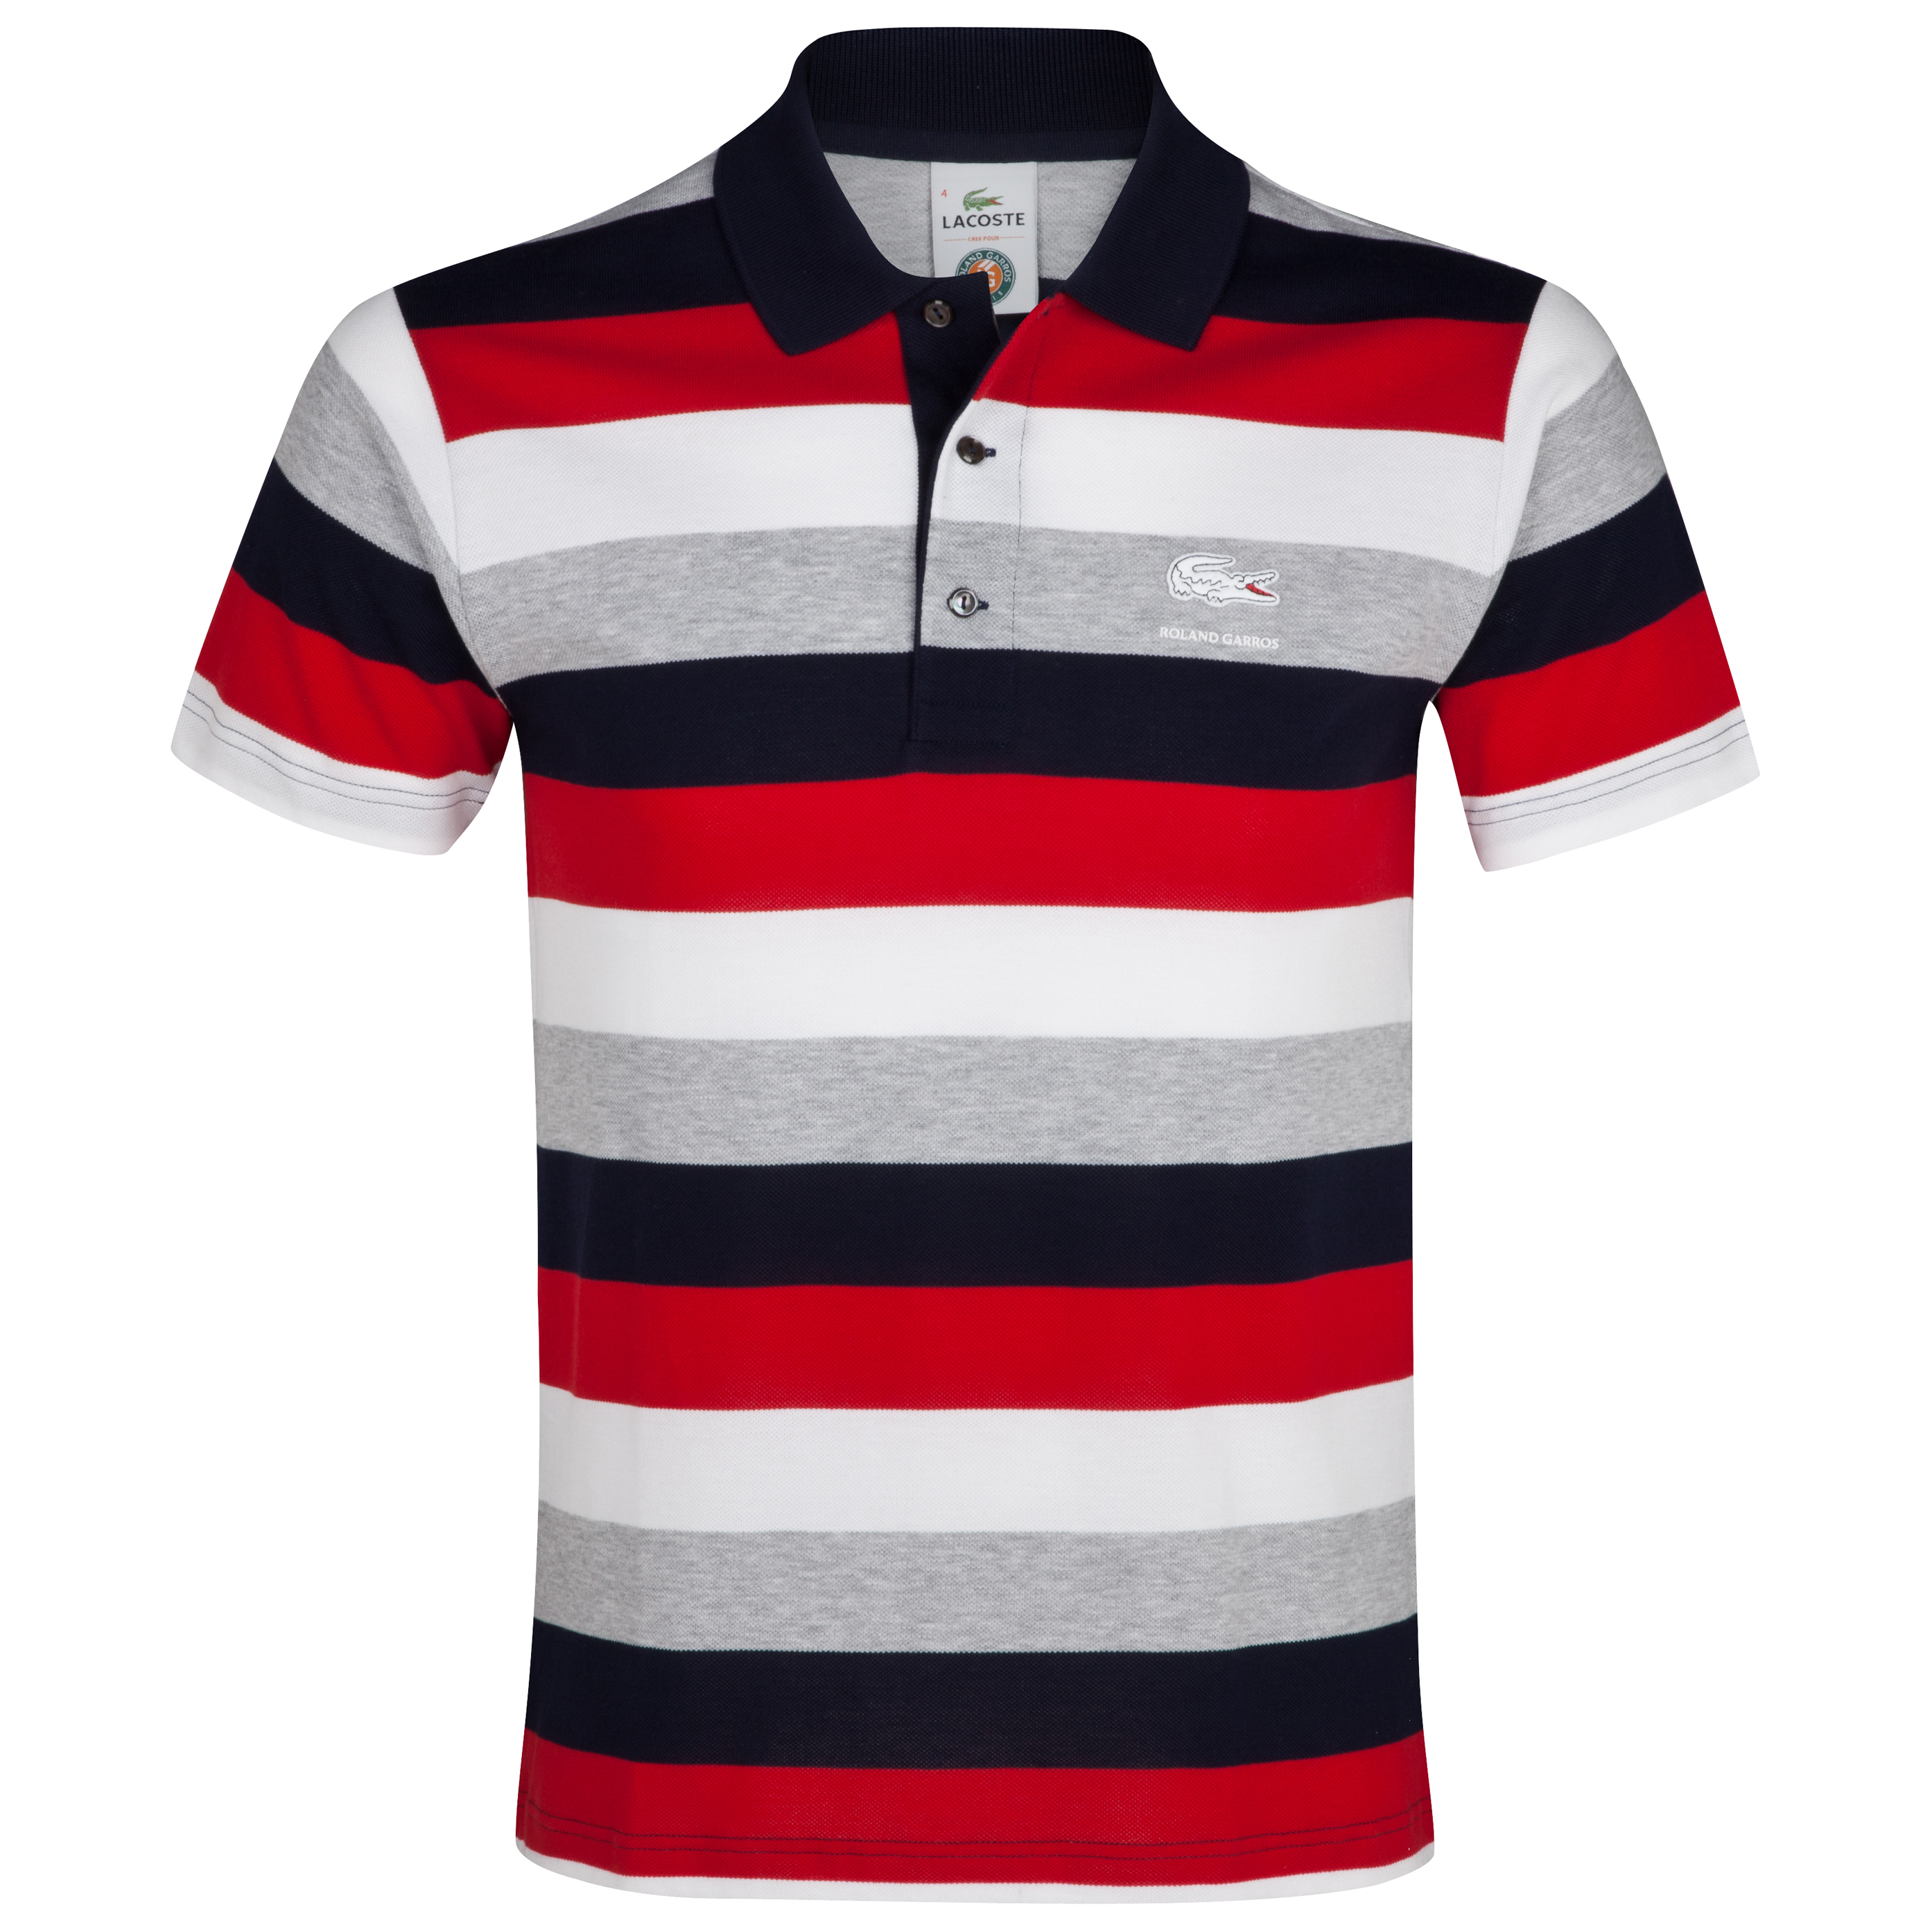 Roland-Garros Raye Polo - Mens Red